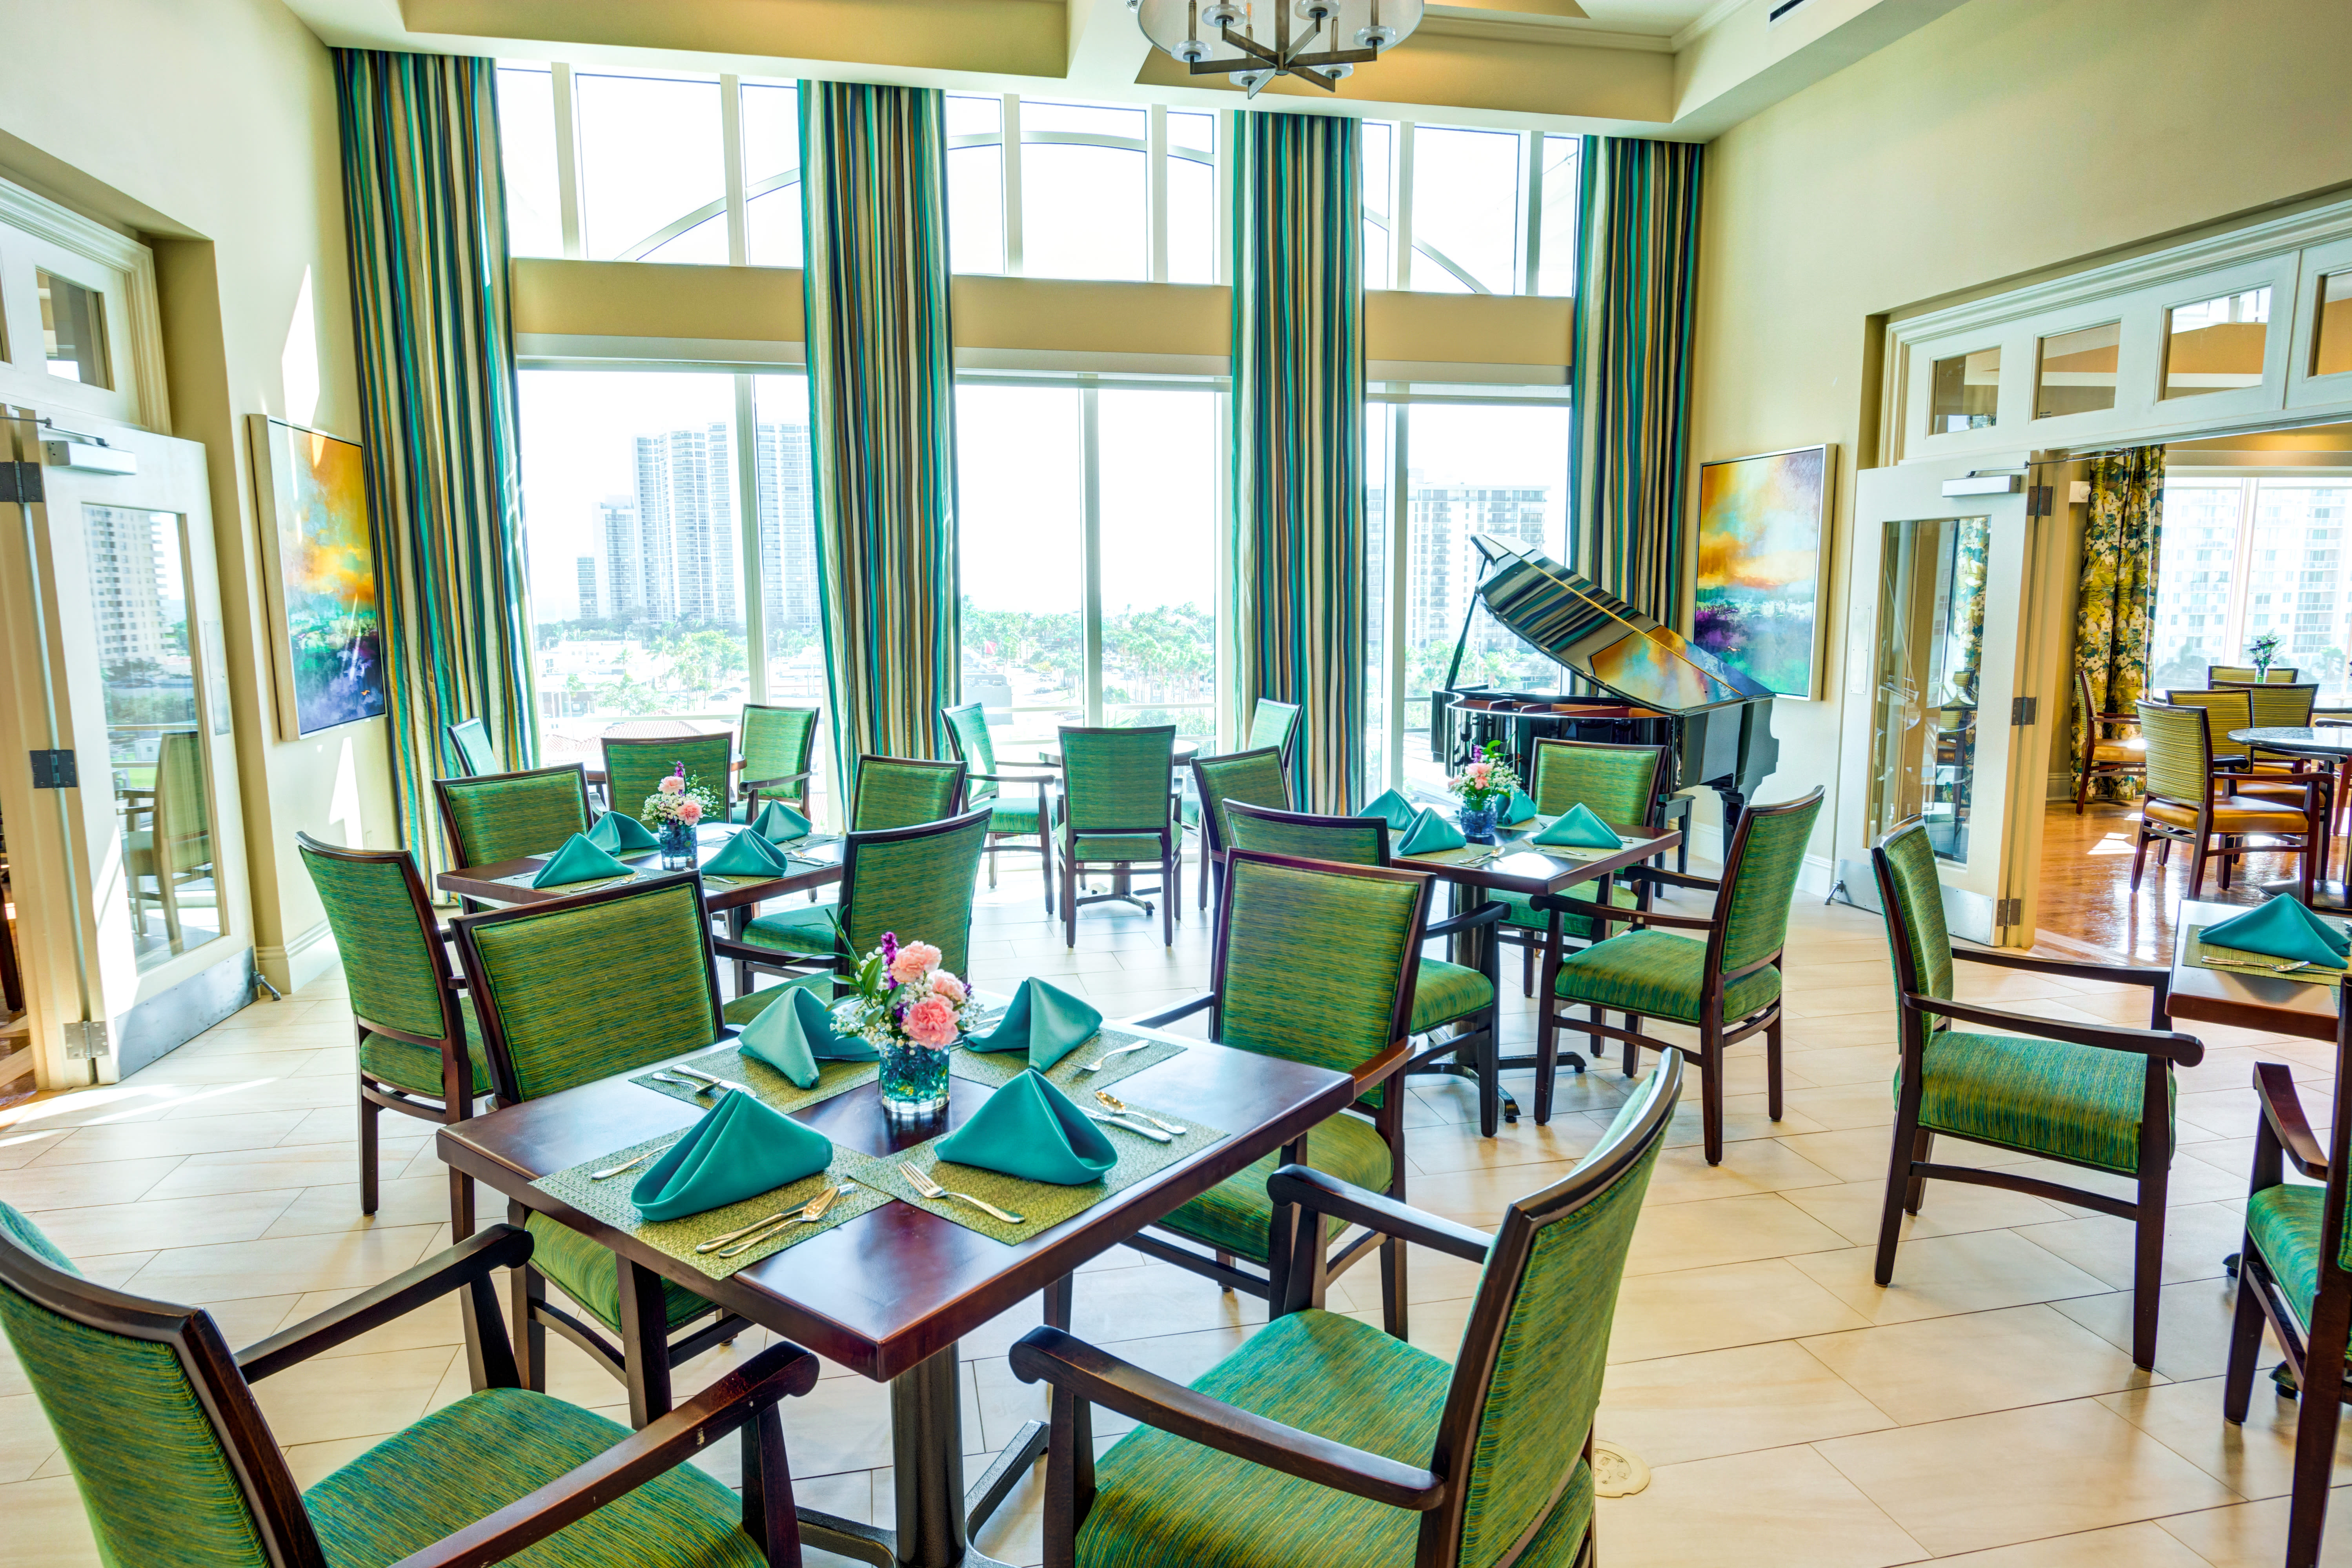 Dining room with big windows at Symphony at the Waterways in Fort Lauderdale, Florida.